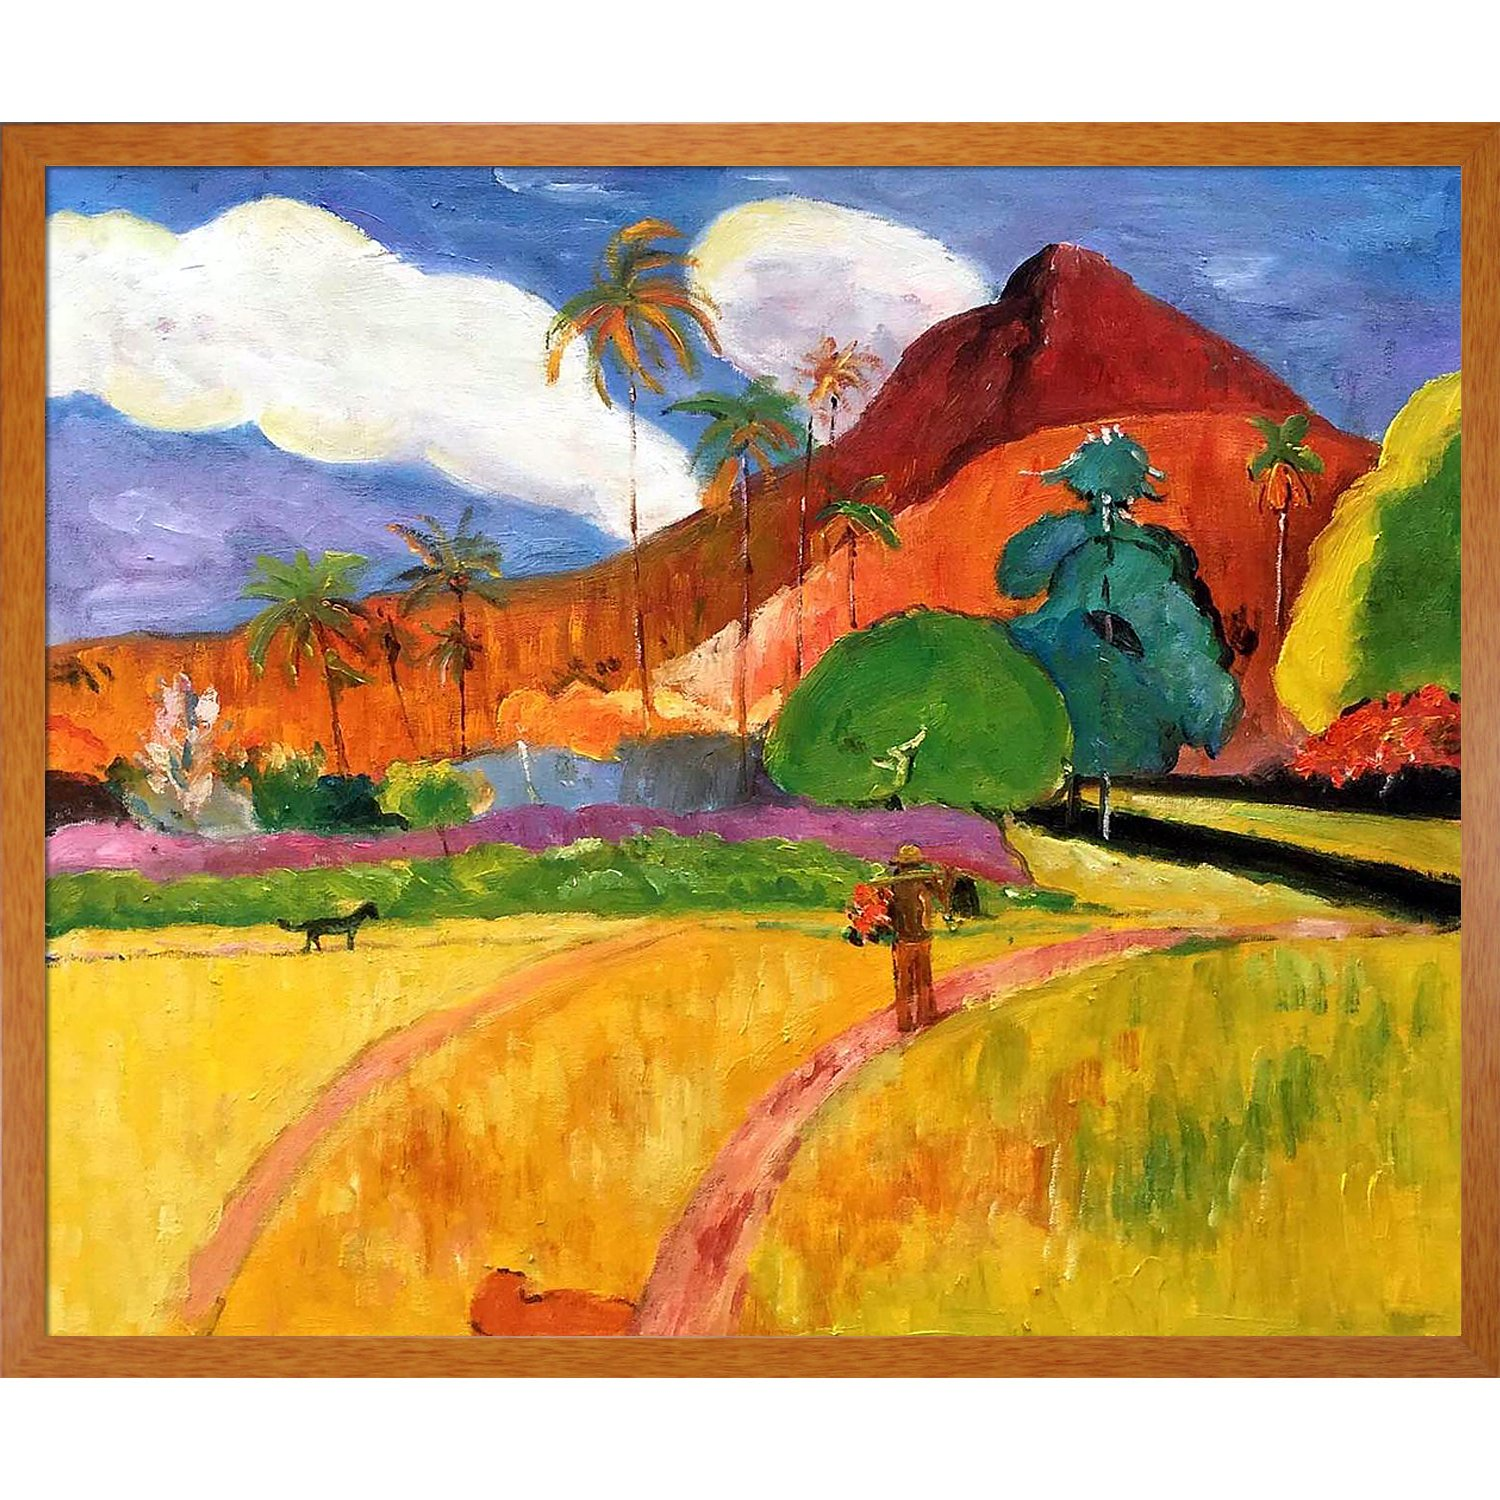 1893 by Gauguin with Studio Pecan Wood Frame overstockArt La Pastiche Tahitian Mountains